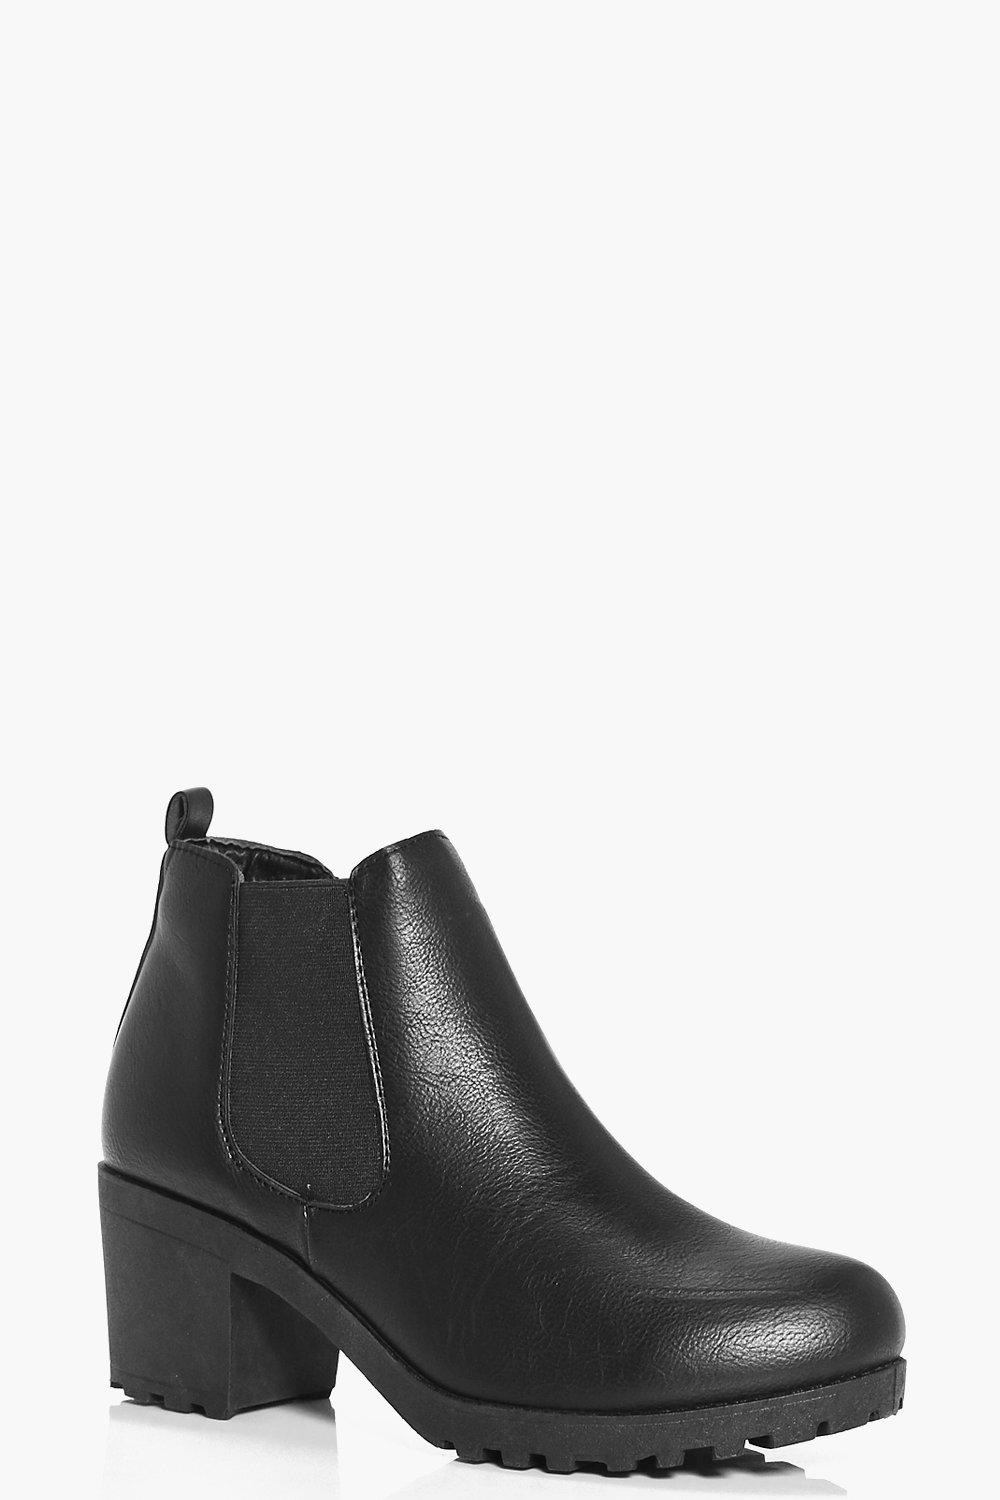 Reimagined Chelsea-style boot with chunky heel and platform featuring Summerwhisper Women's Comfy Elastic Almond Toe Platform Short Chelsea Boots Block High Heel Slip .